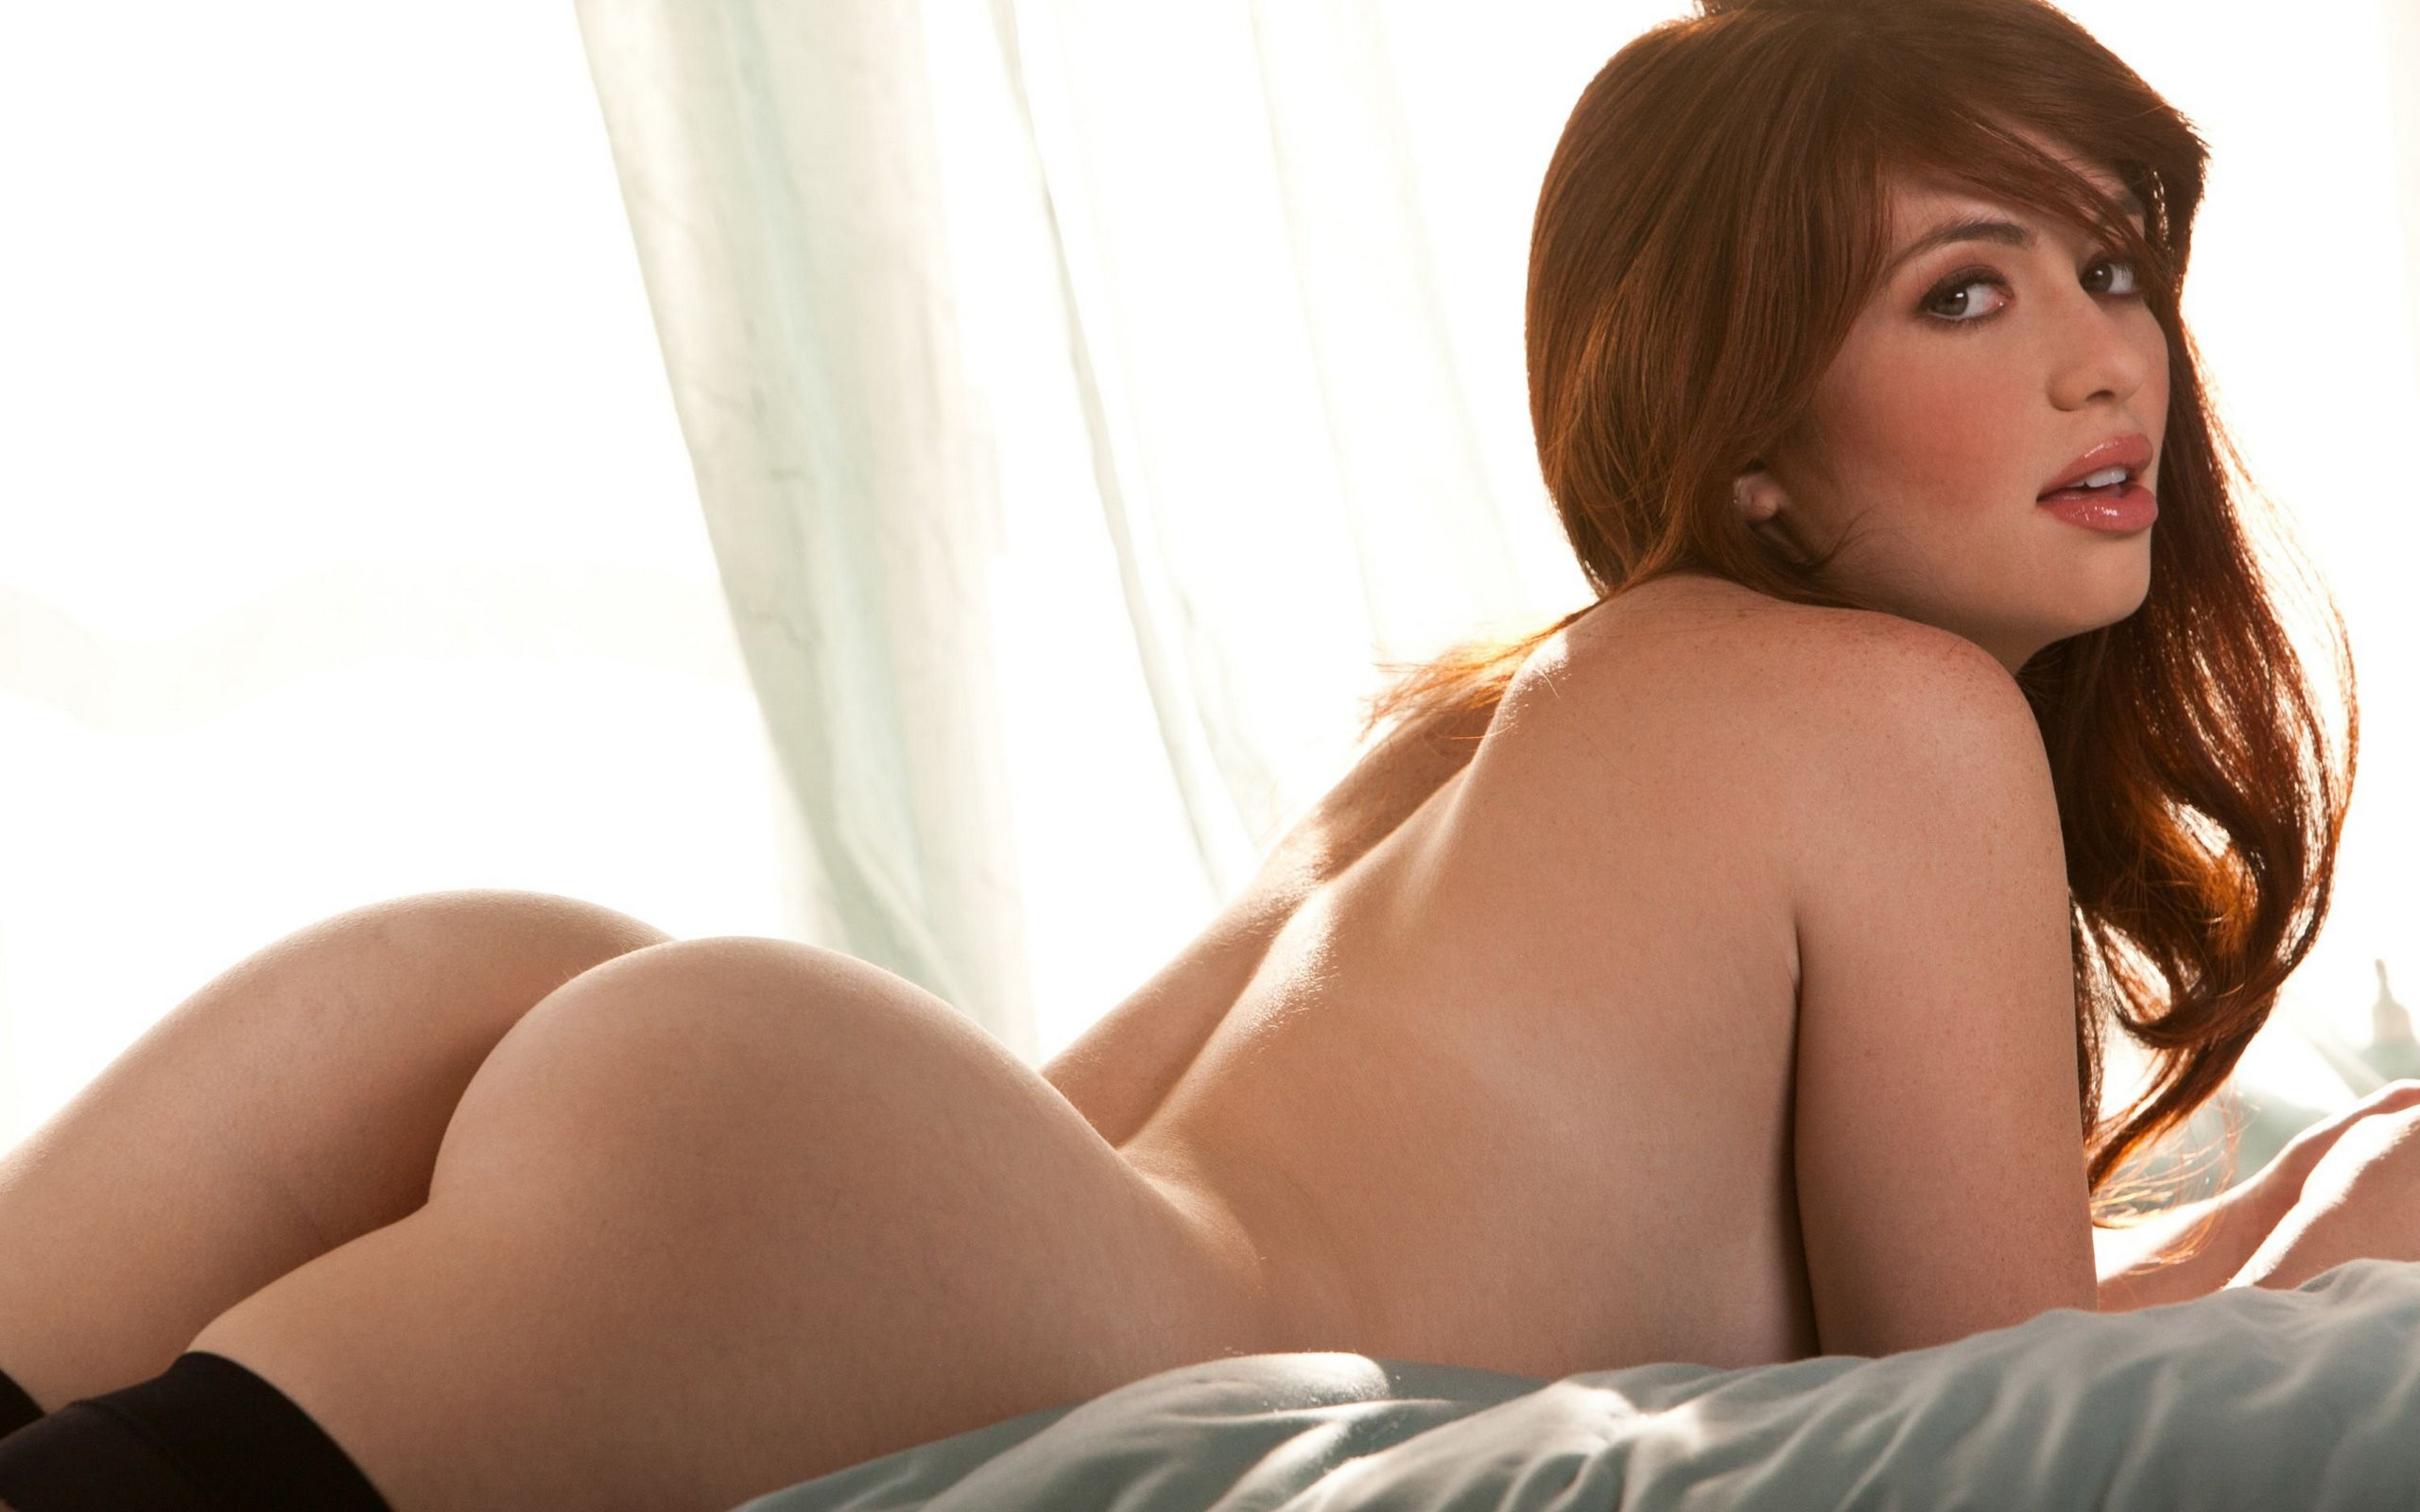 Hottest asses in hollywood nude can suggest